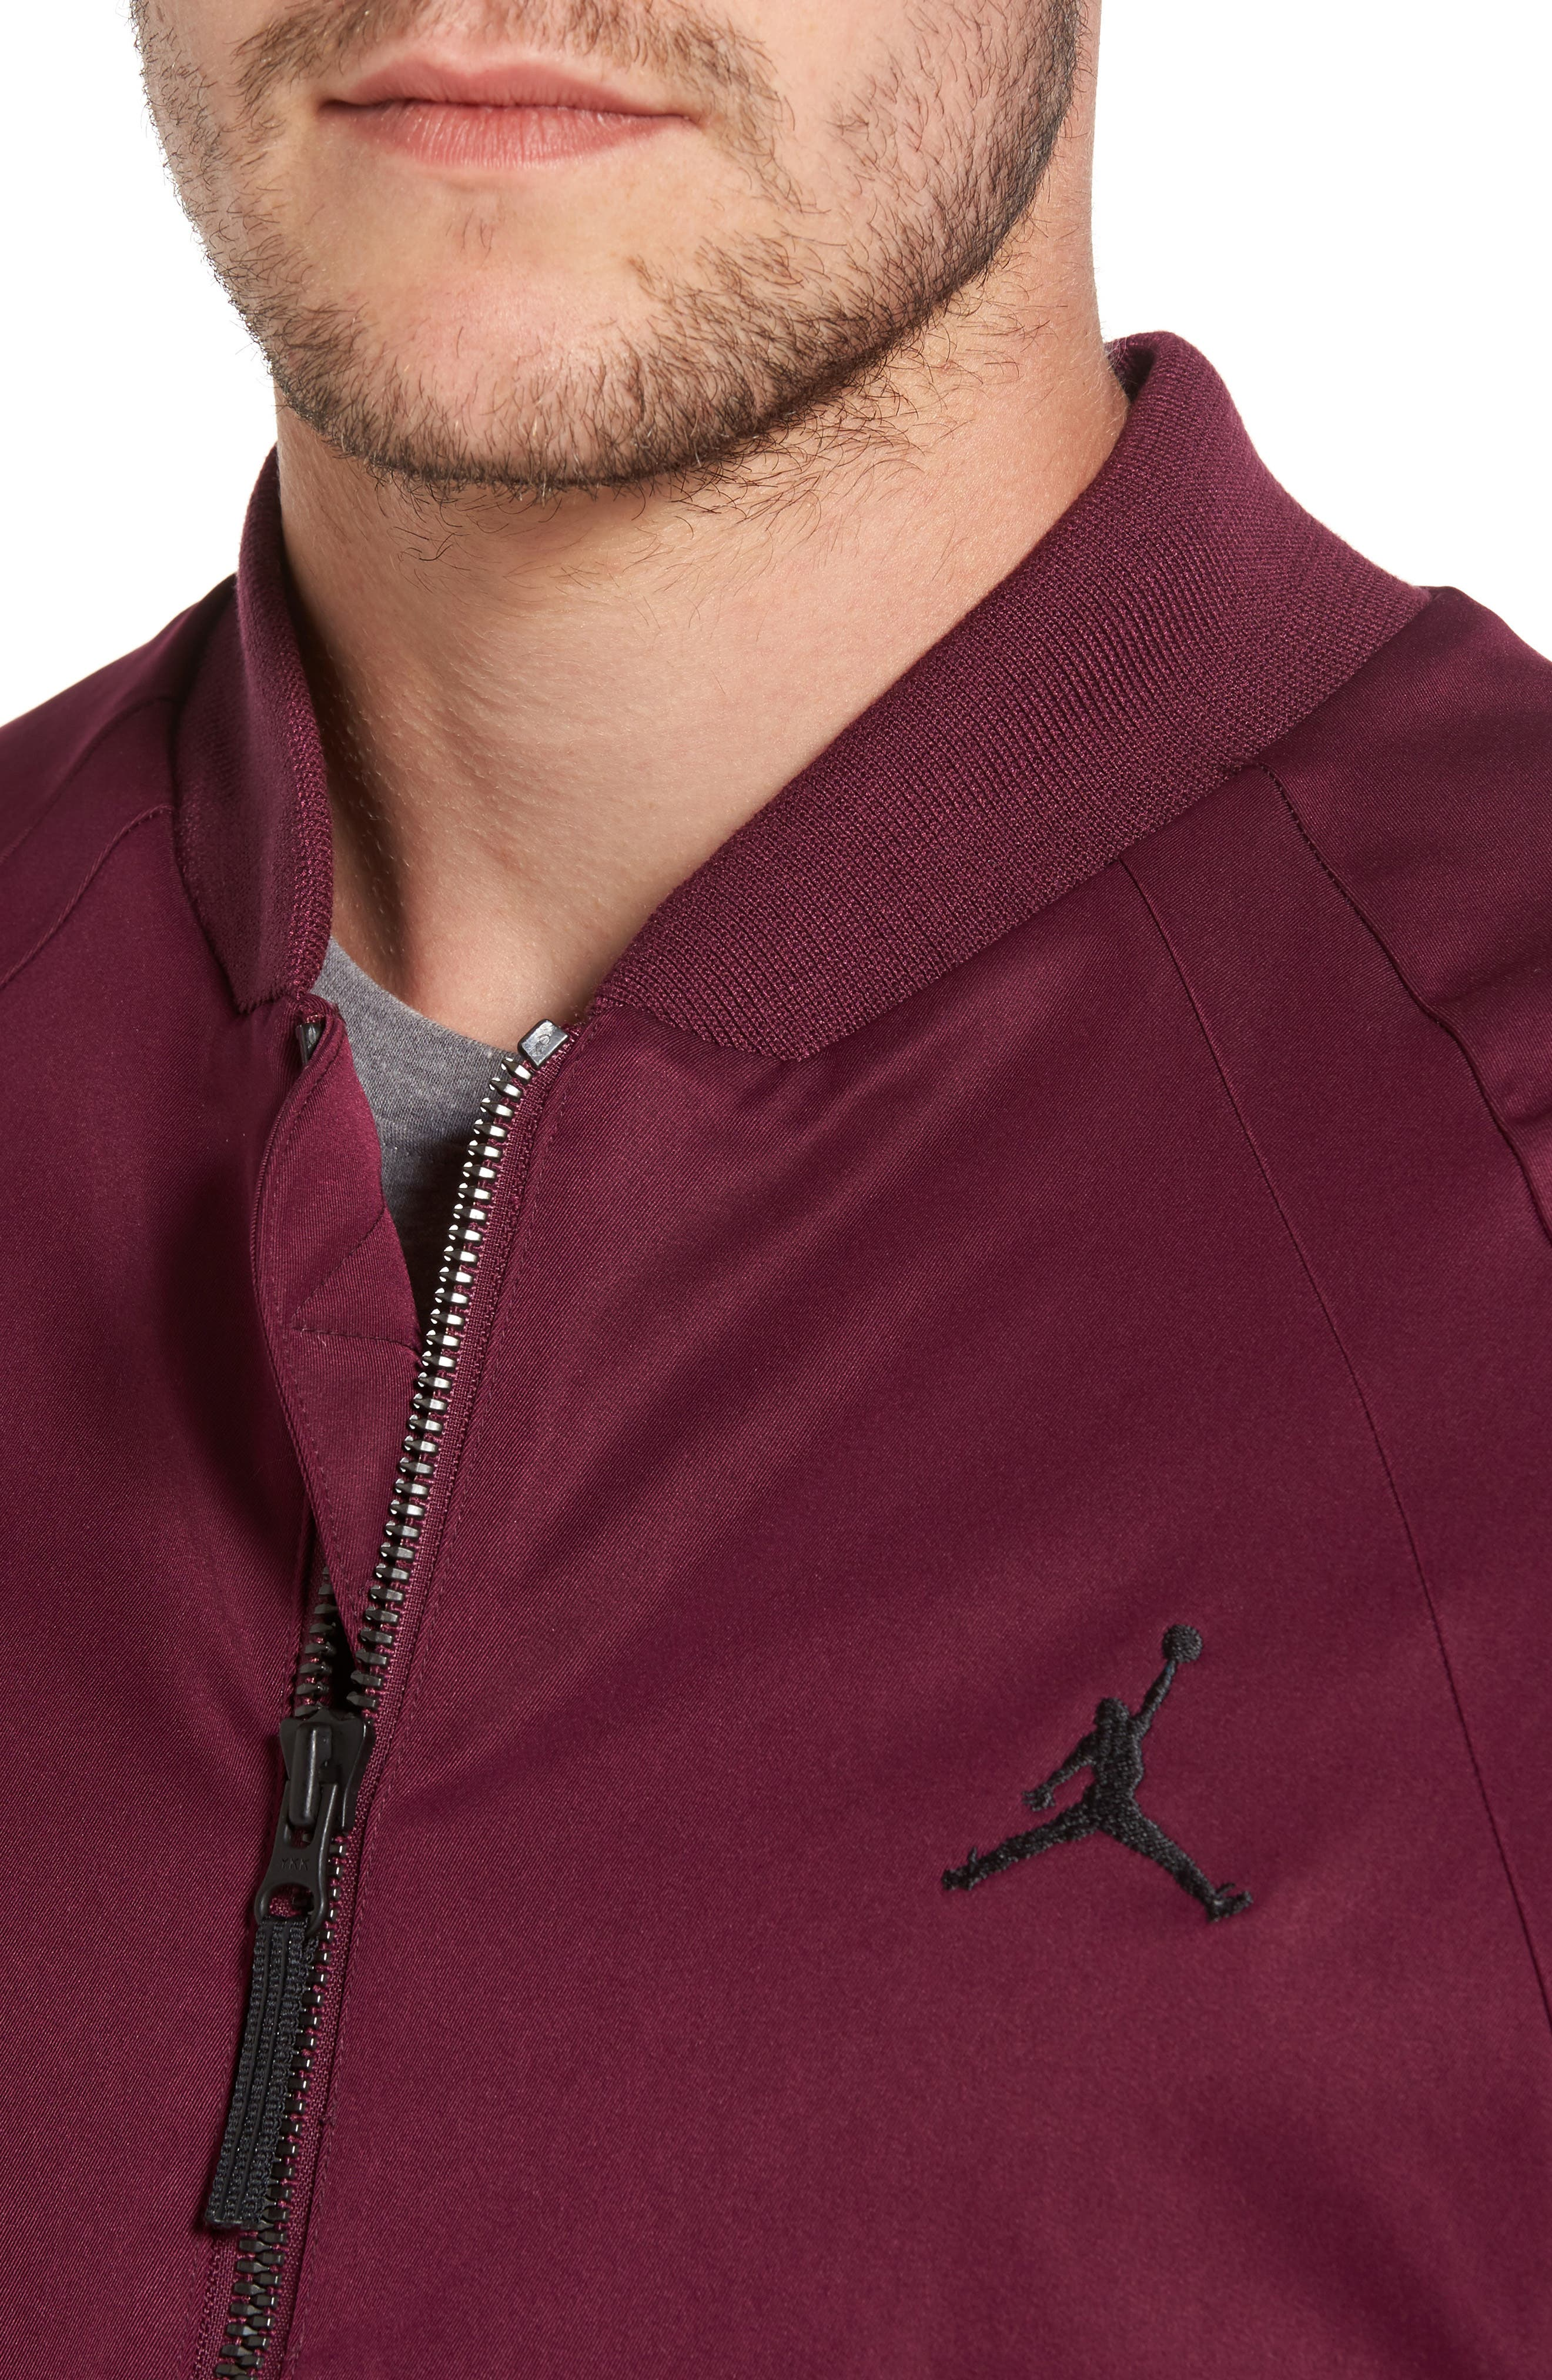 Sportswear Wings MA-1 Bomber Jacket,                             Alternate thumbnail 4, color,                             Bordeaux/ Black